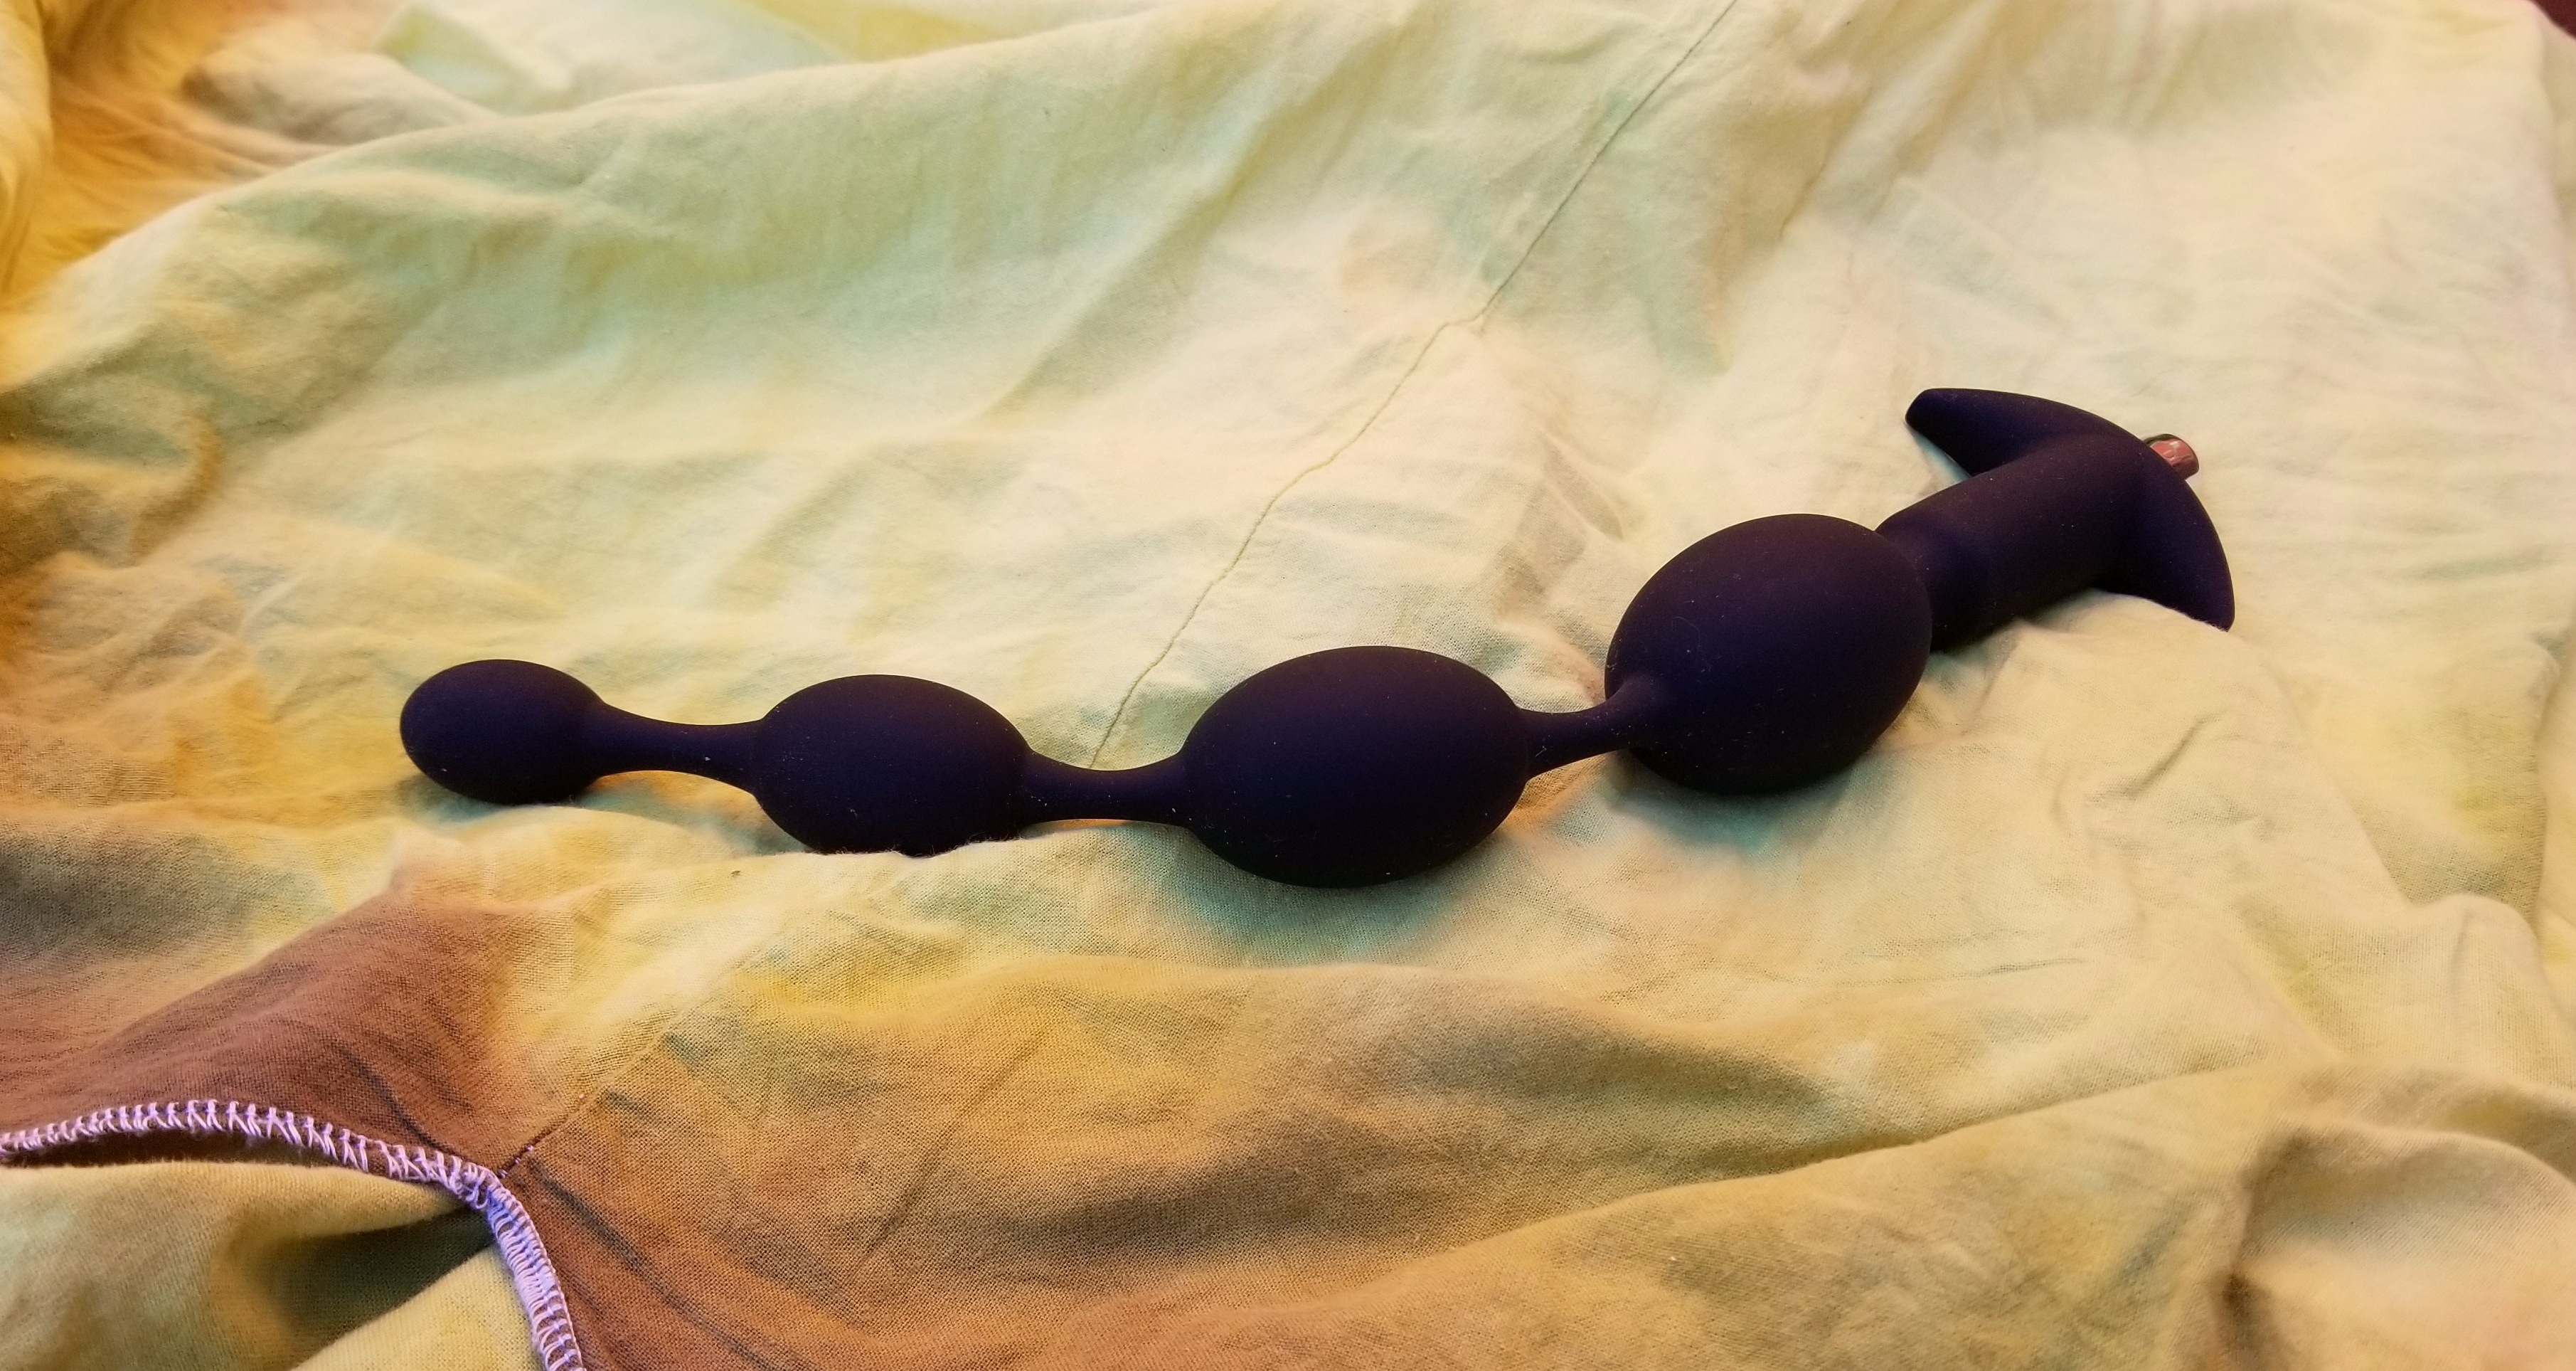 Black silicone anal beads with four beads of progressing size sit on a green fabric. There is a crescent base with a bullet vibe inserted.